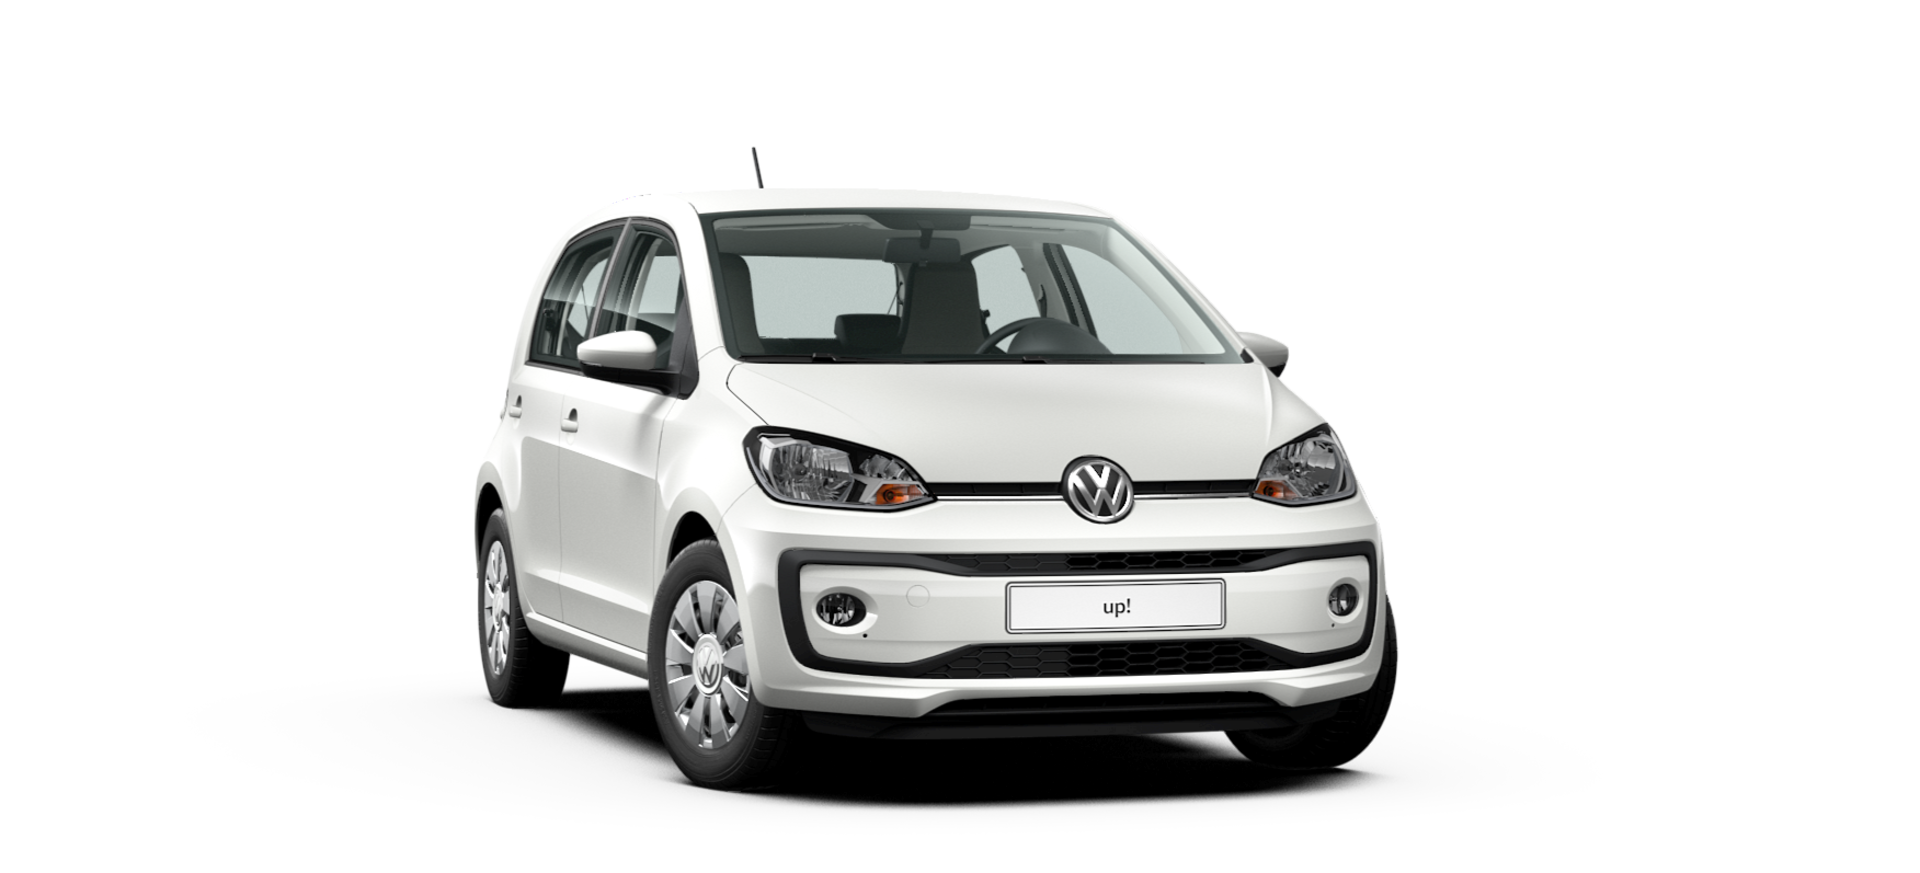 Move up! BMT 4 usi / 60 CP/44 kW / 1.0l / Manuala, 5 trepte / 4-usi : Volkswagen Move up!